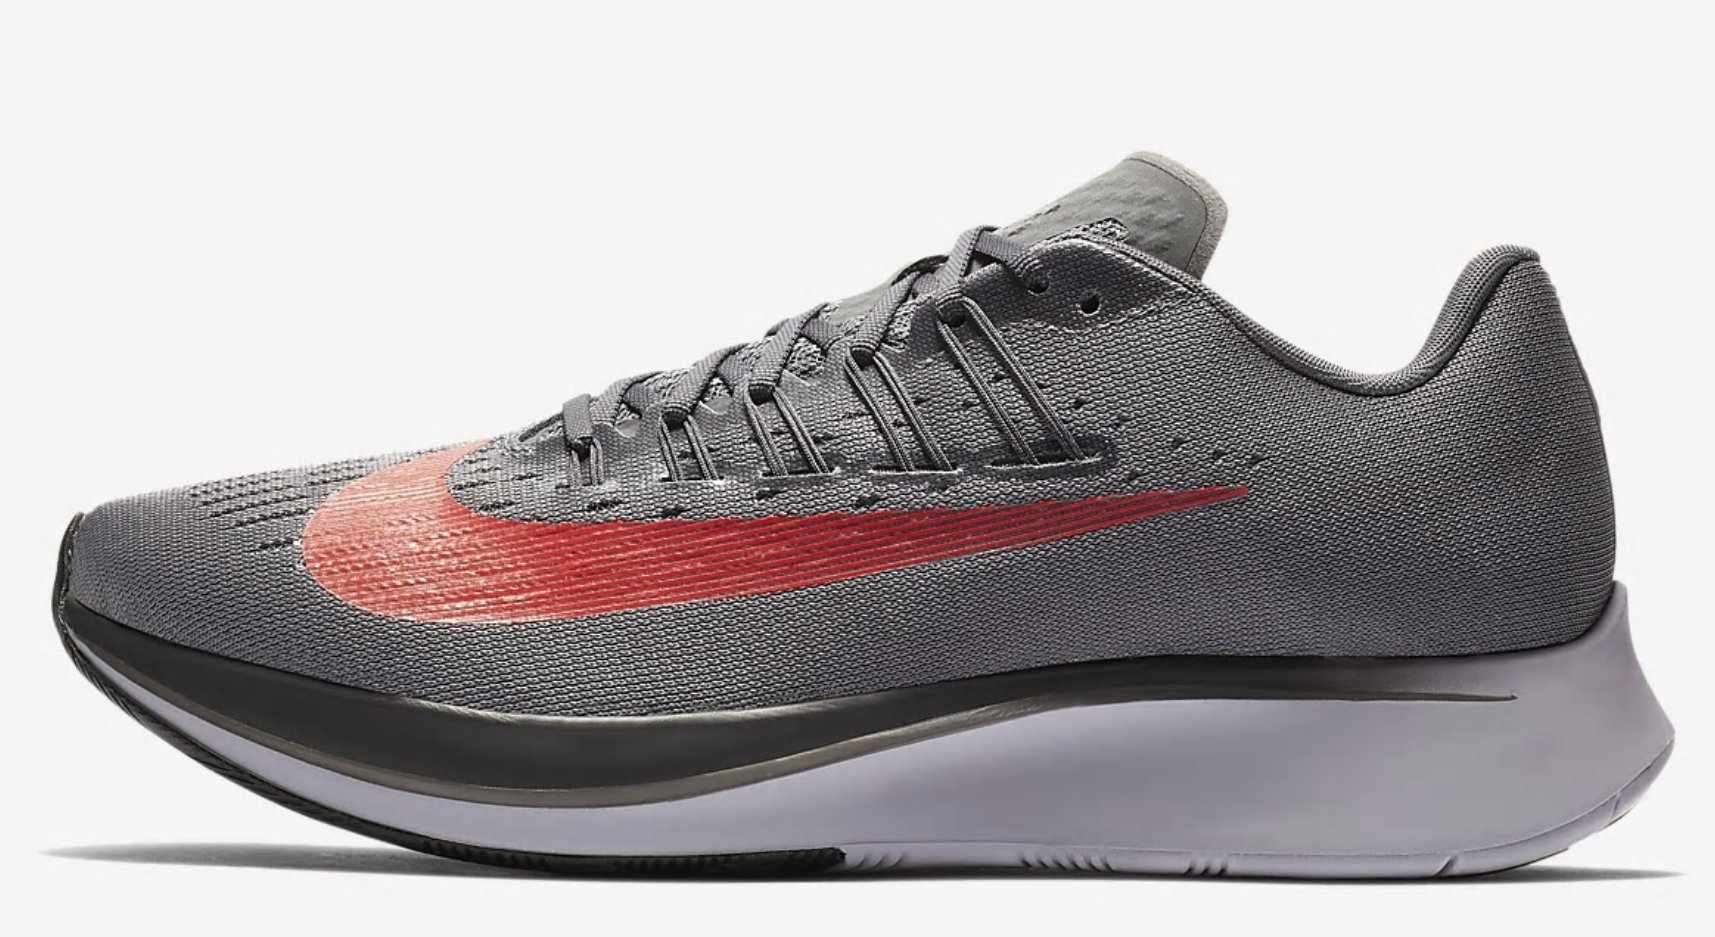 096a1f0dbc0e Galleon - NIKE Men sZoom Fly Running Shoe Gunsmoke Bright Crimson-Thunder  Grey 13.0